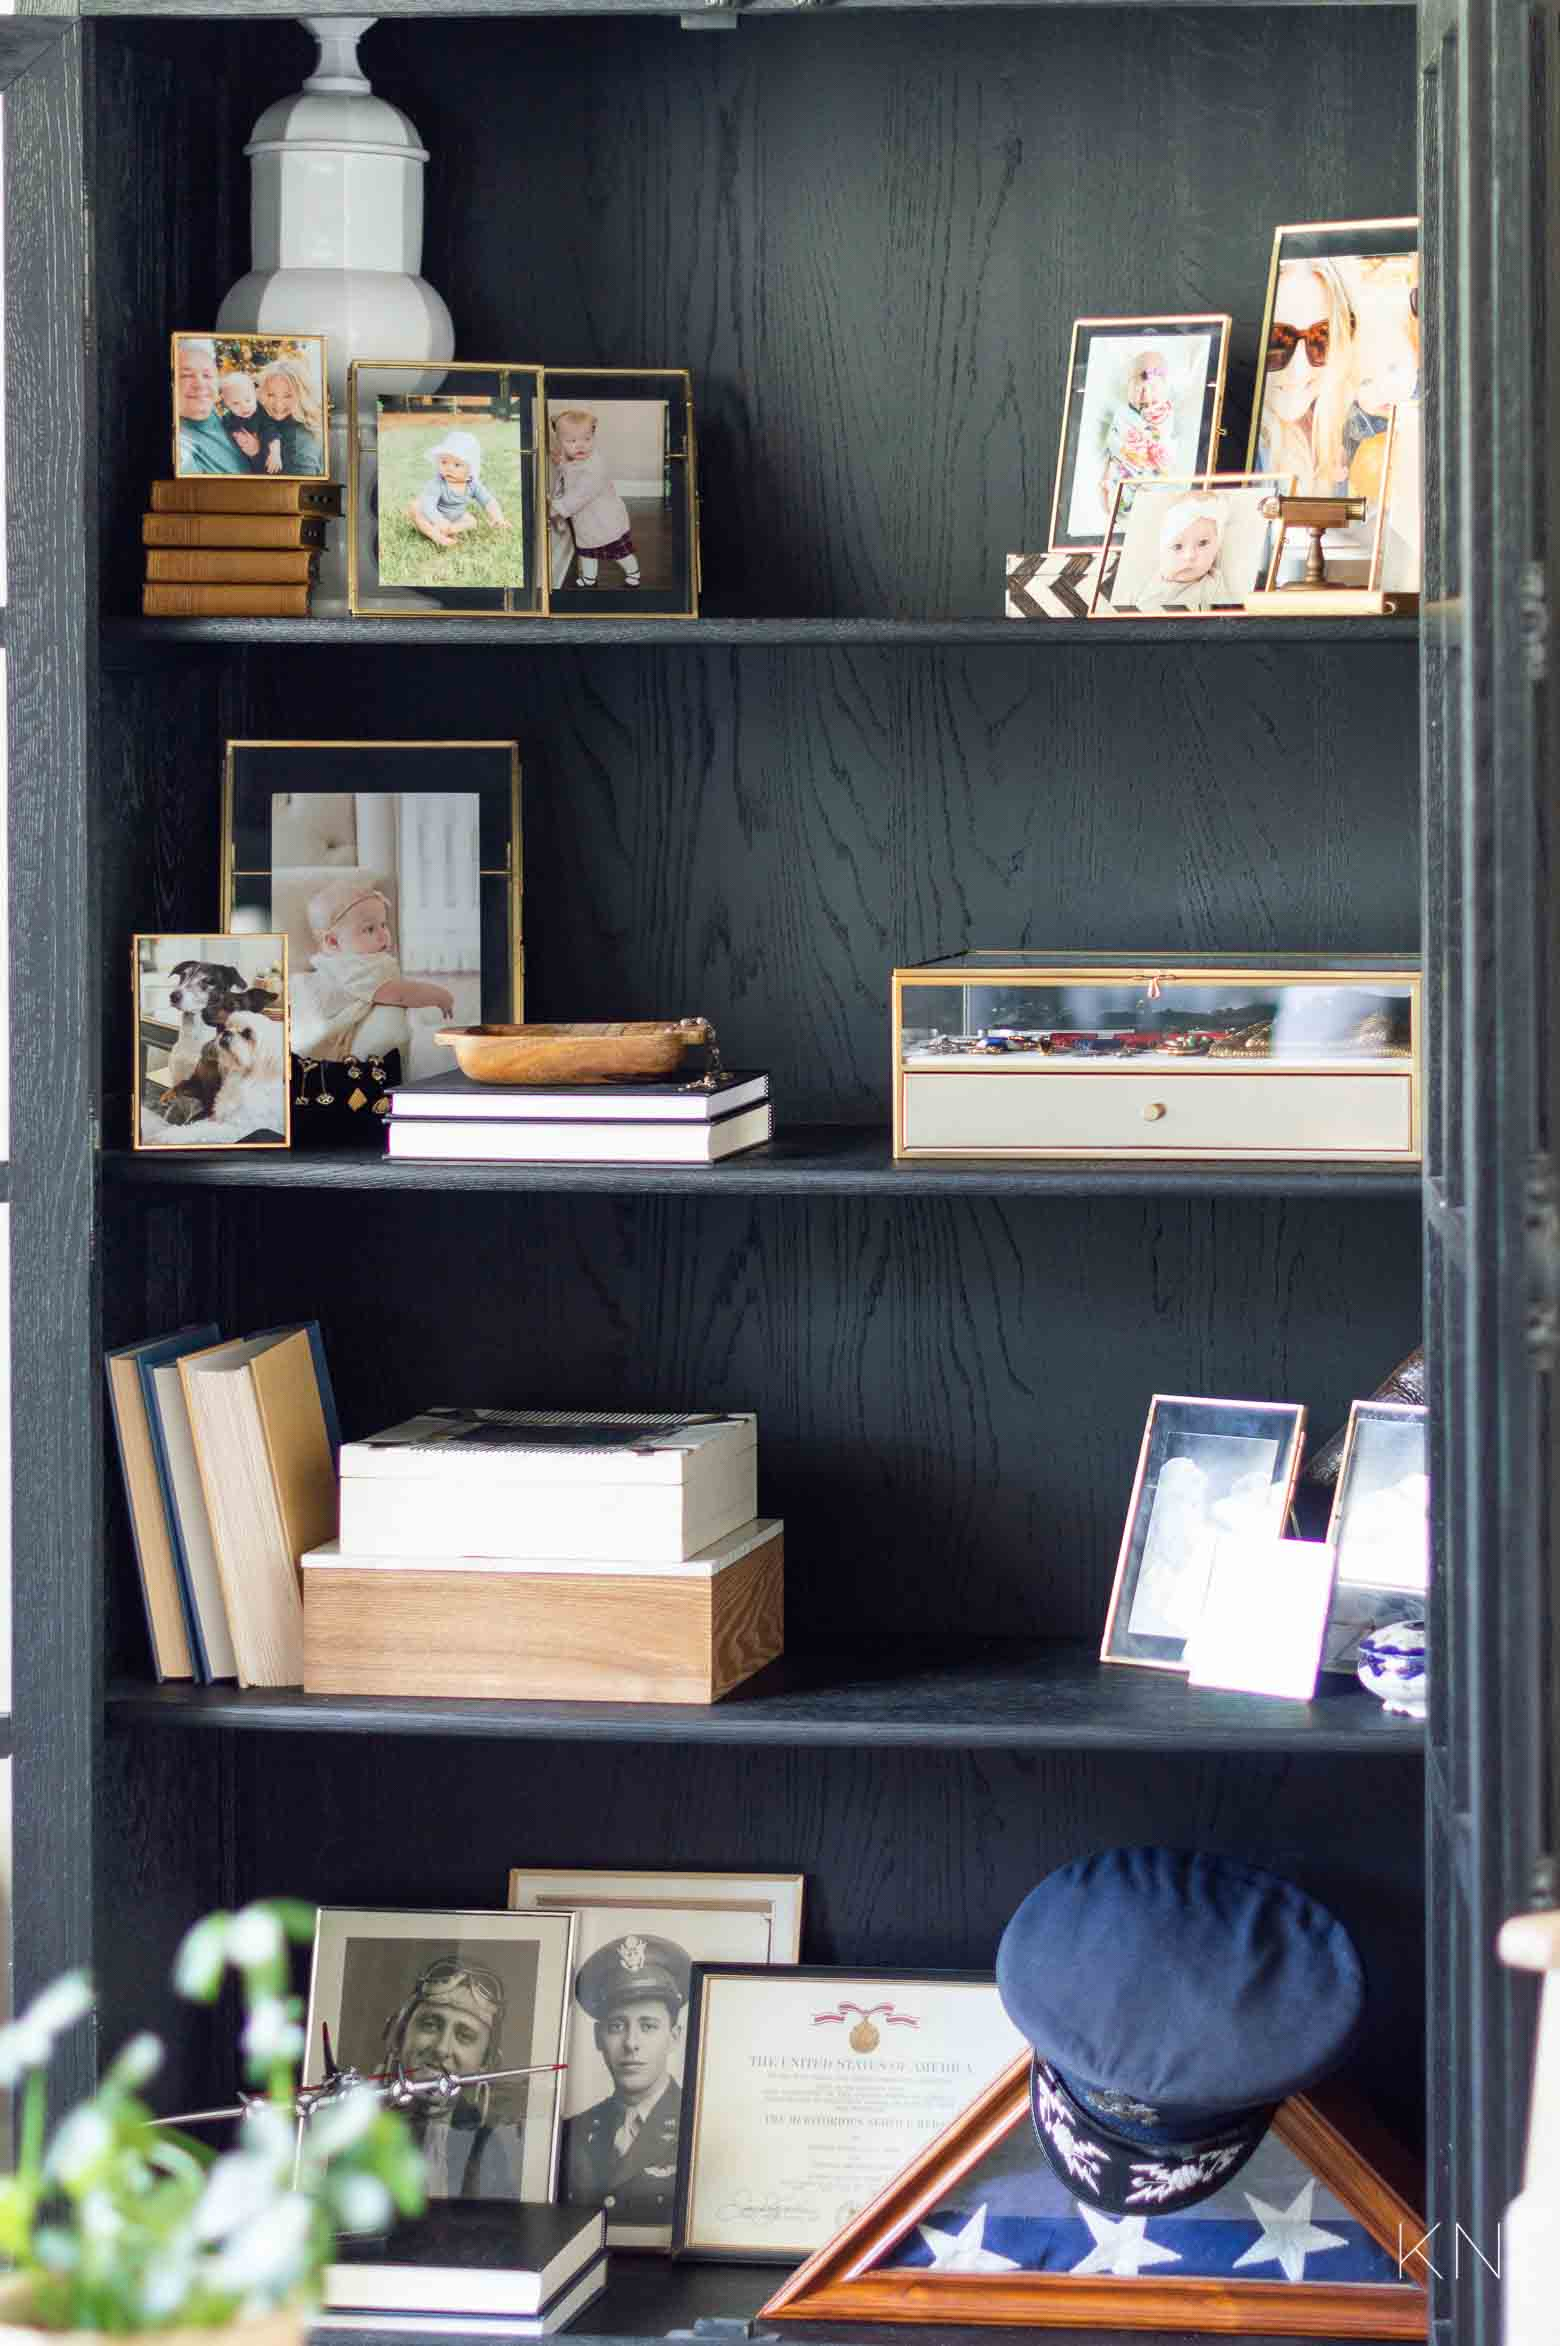 How to Style Shelves in a Glass Door Cabinet